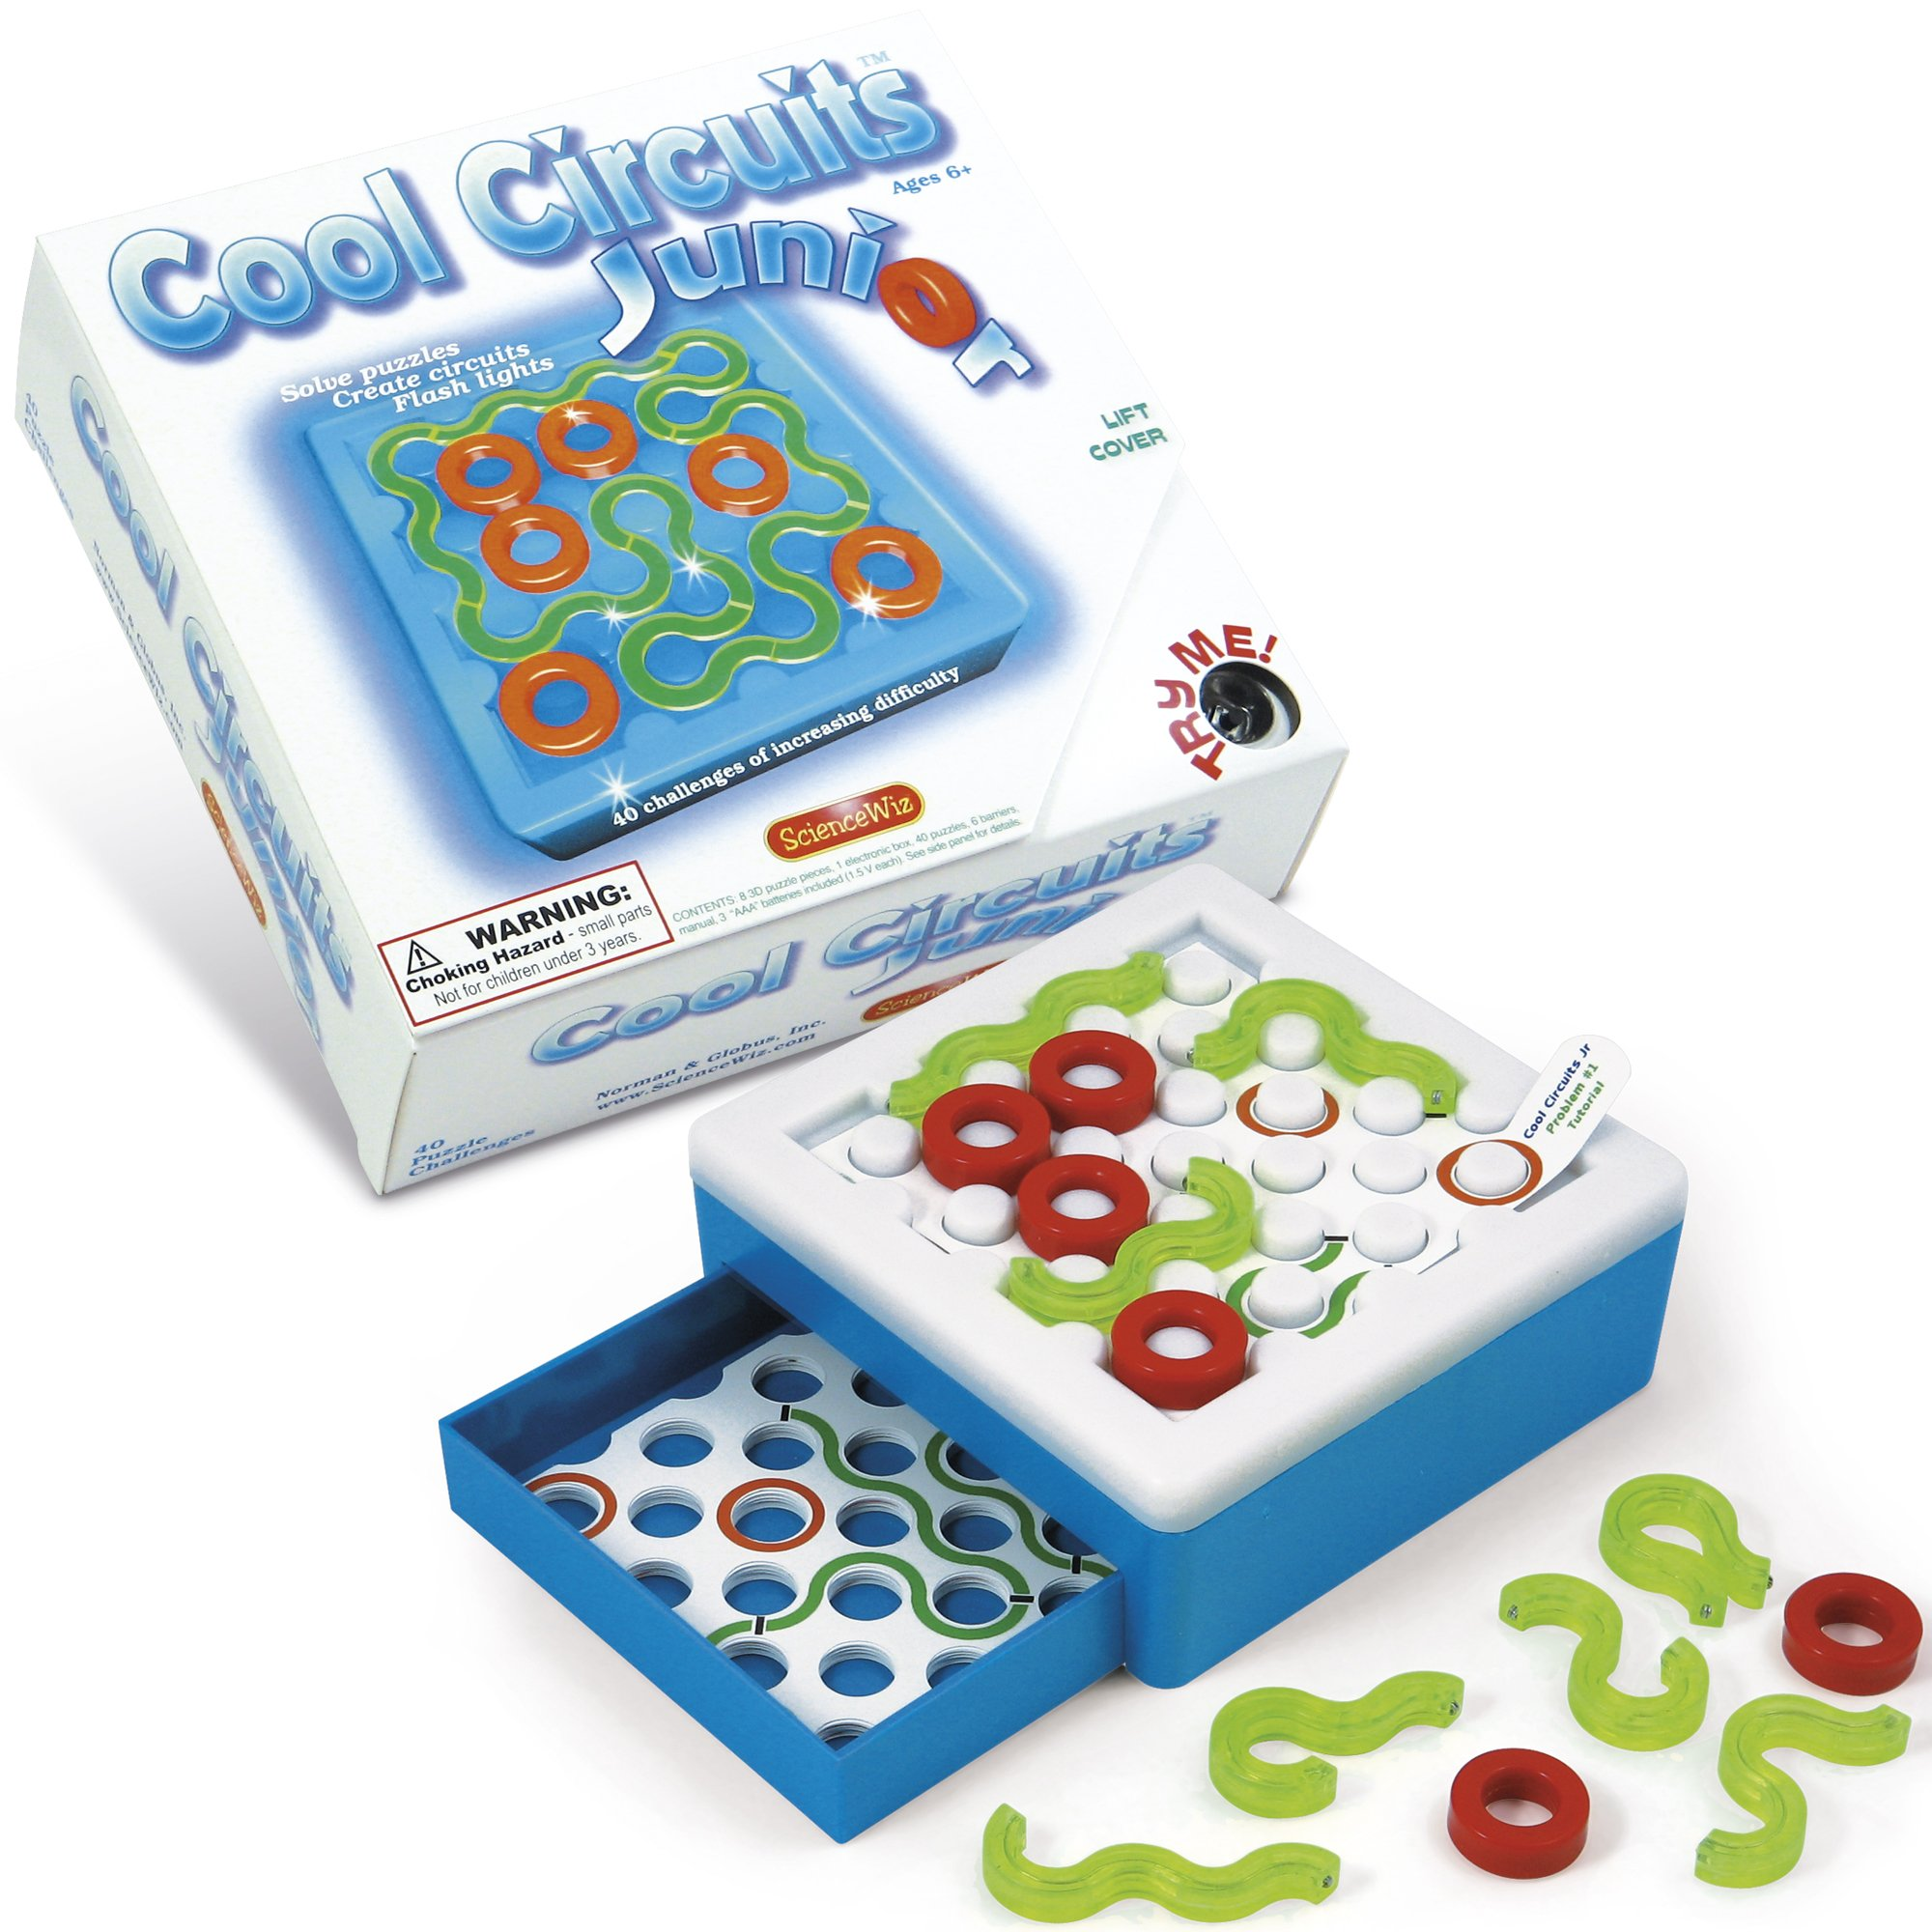 Science Wiz - Cool Circuits Jr. Puzzle Game